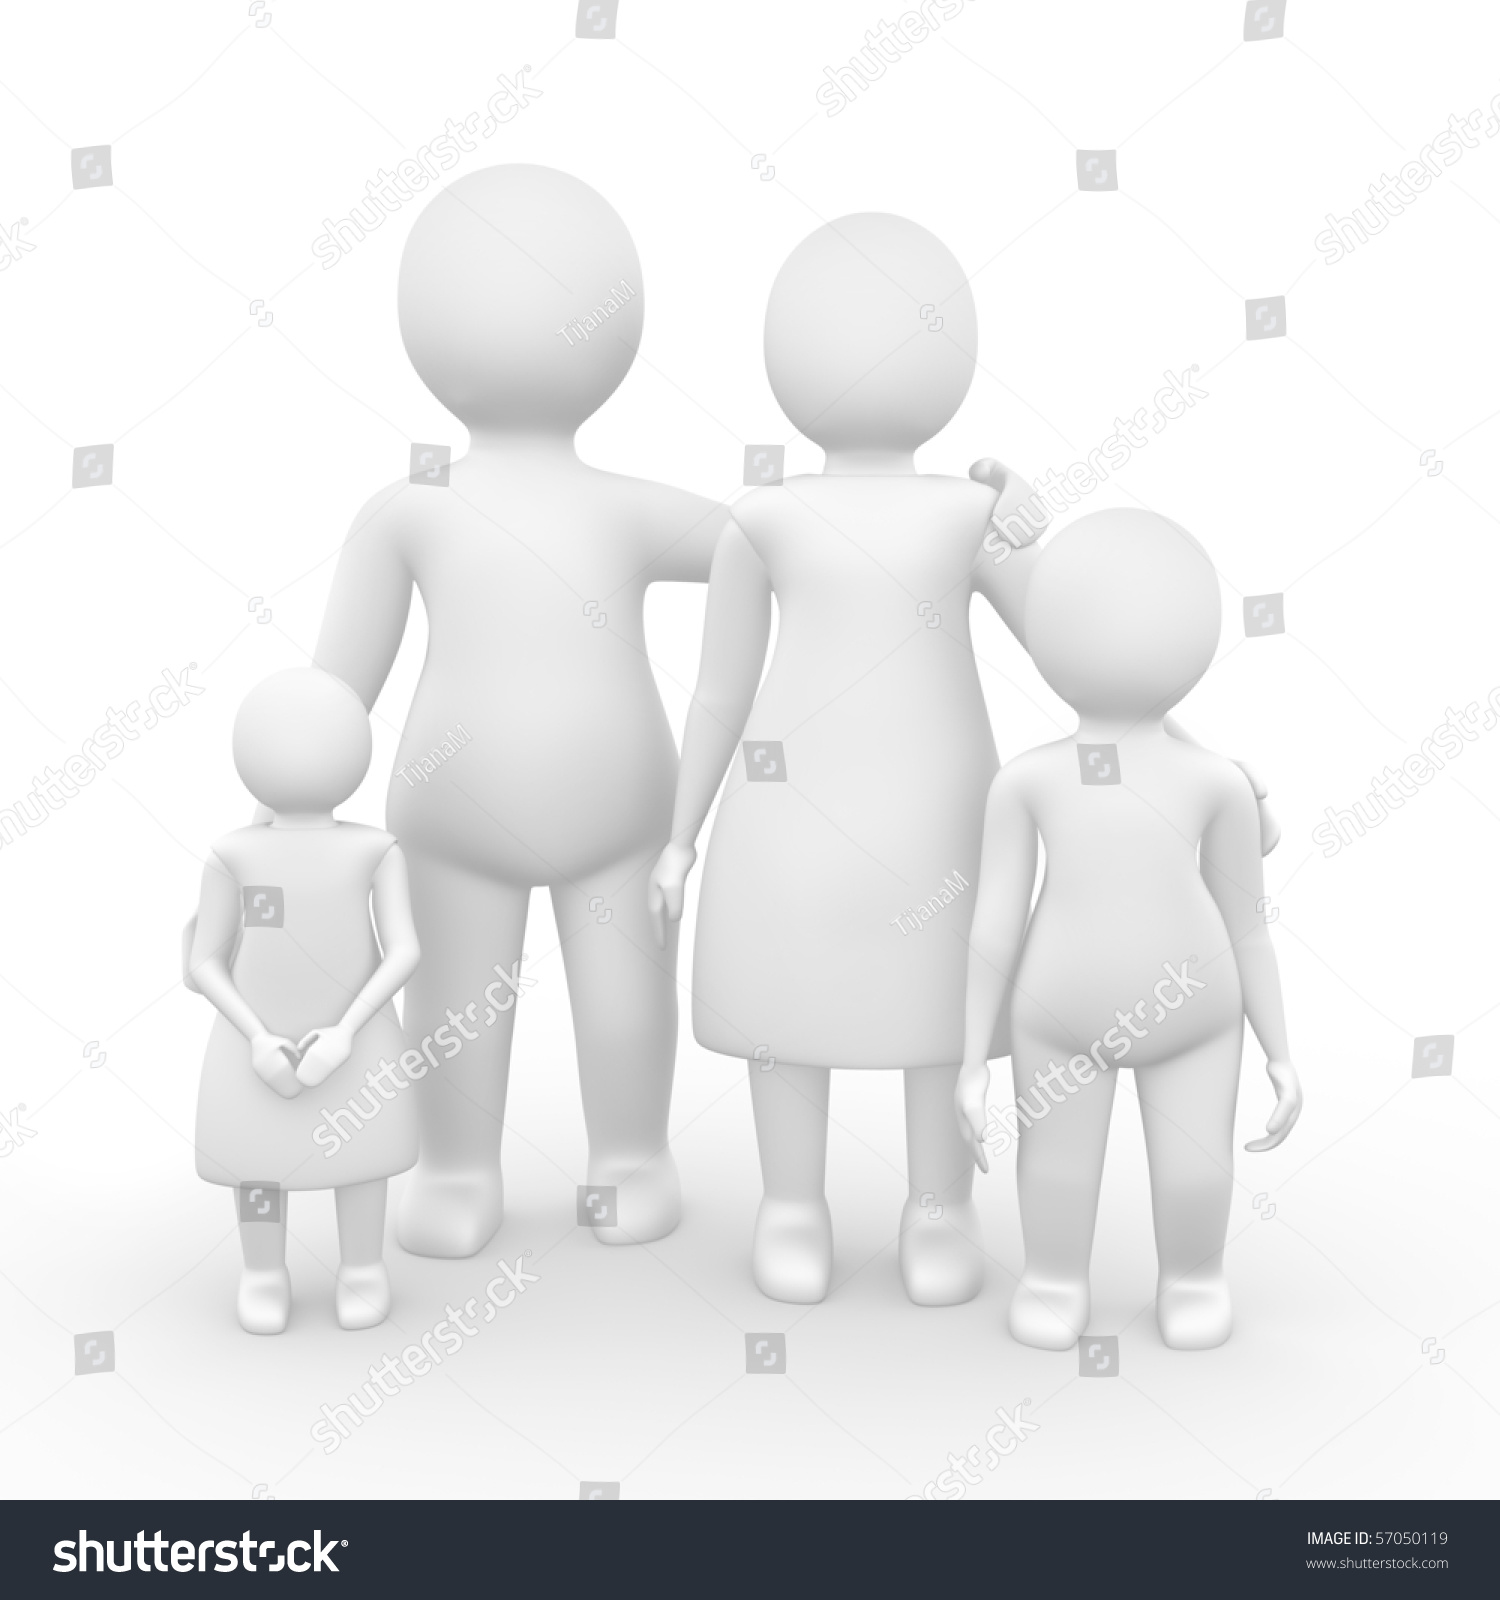 Family of four members 3d illustration isolated on white 57050119